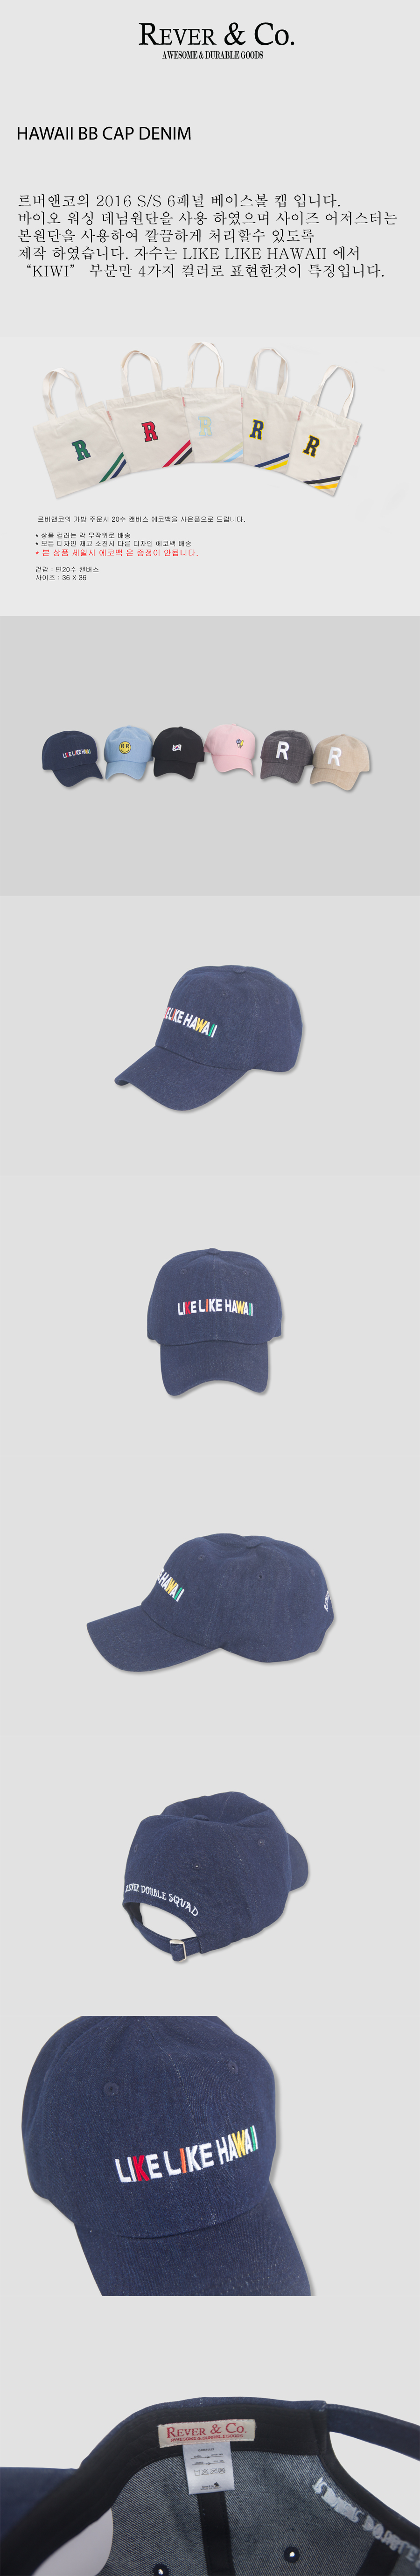 HAWAII BB CAP DENIM - sang.jpg